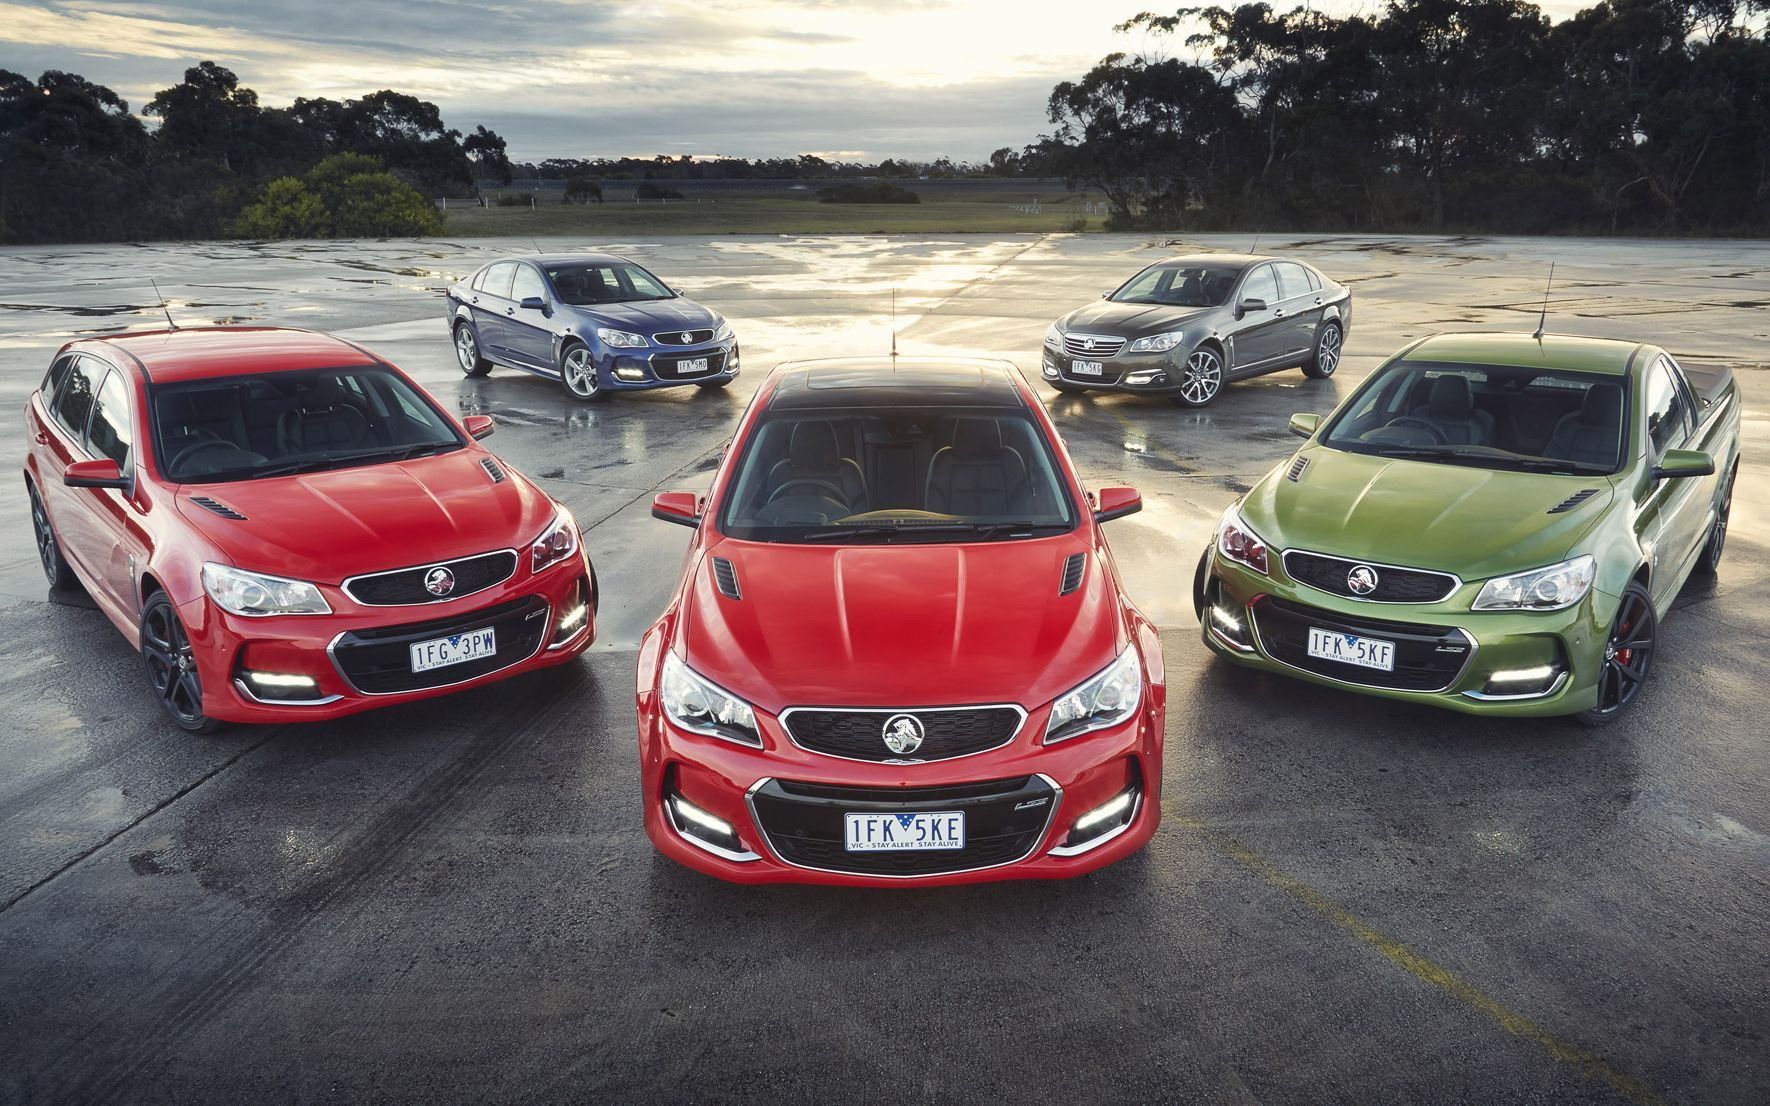 2016-holden-commodore_100527258_h